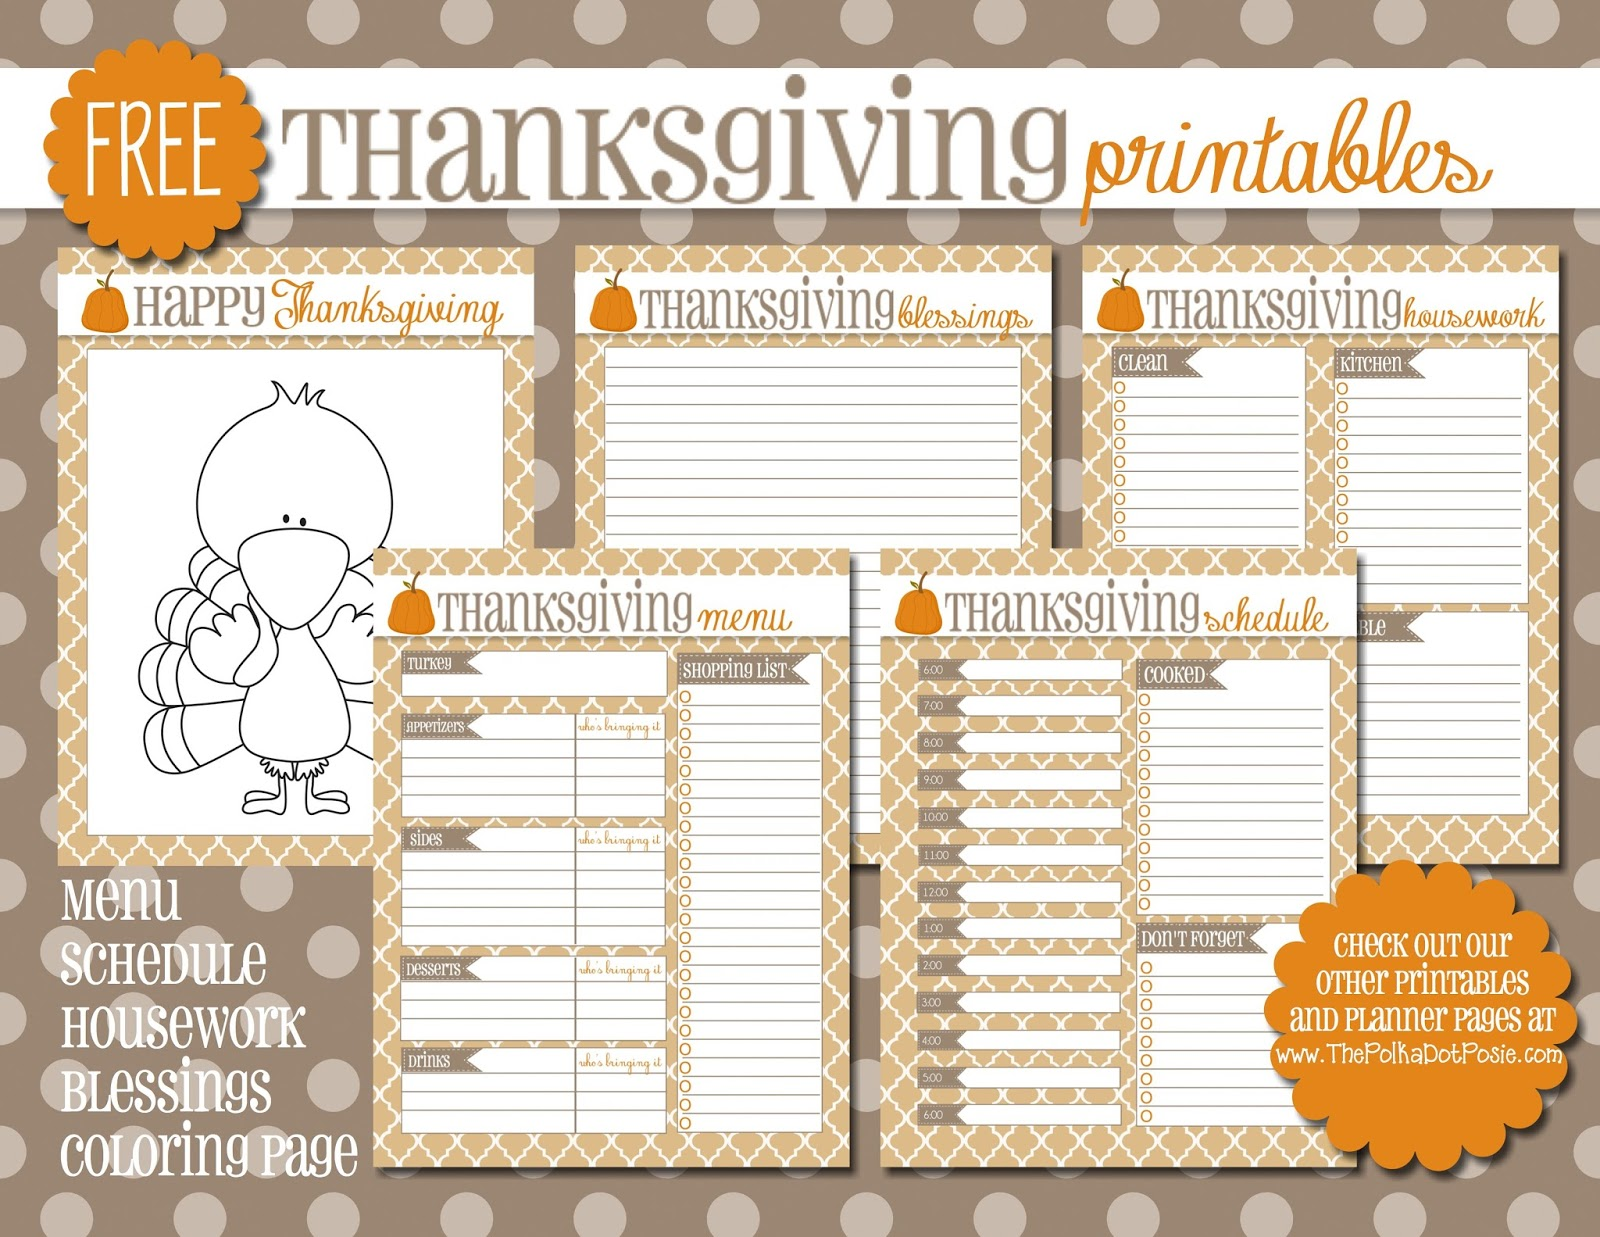 graphic about Thanksgiving Menu Planner Printable titled The Polka Dot Posie: Absolutely free Thanksgiving Printables for your